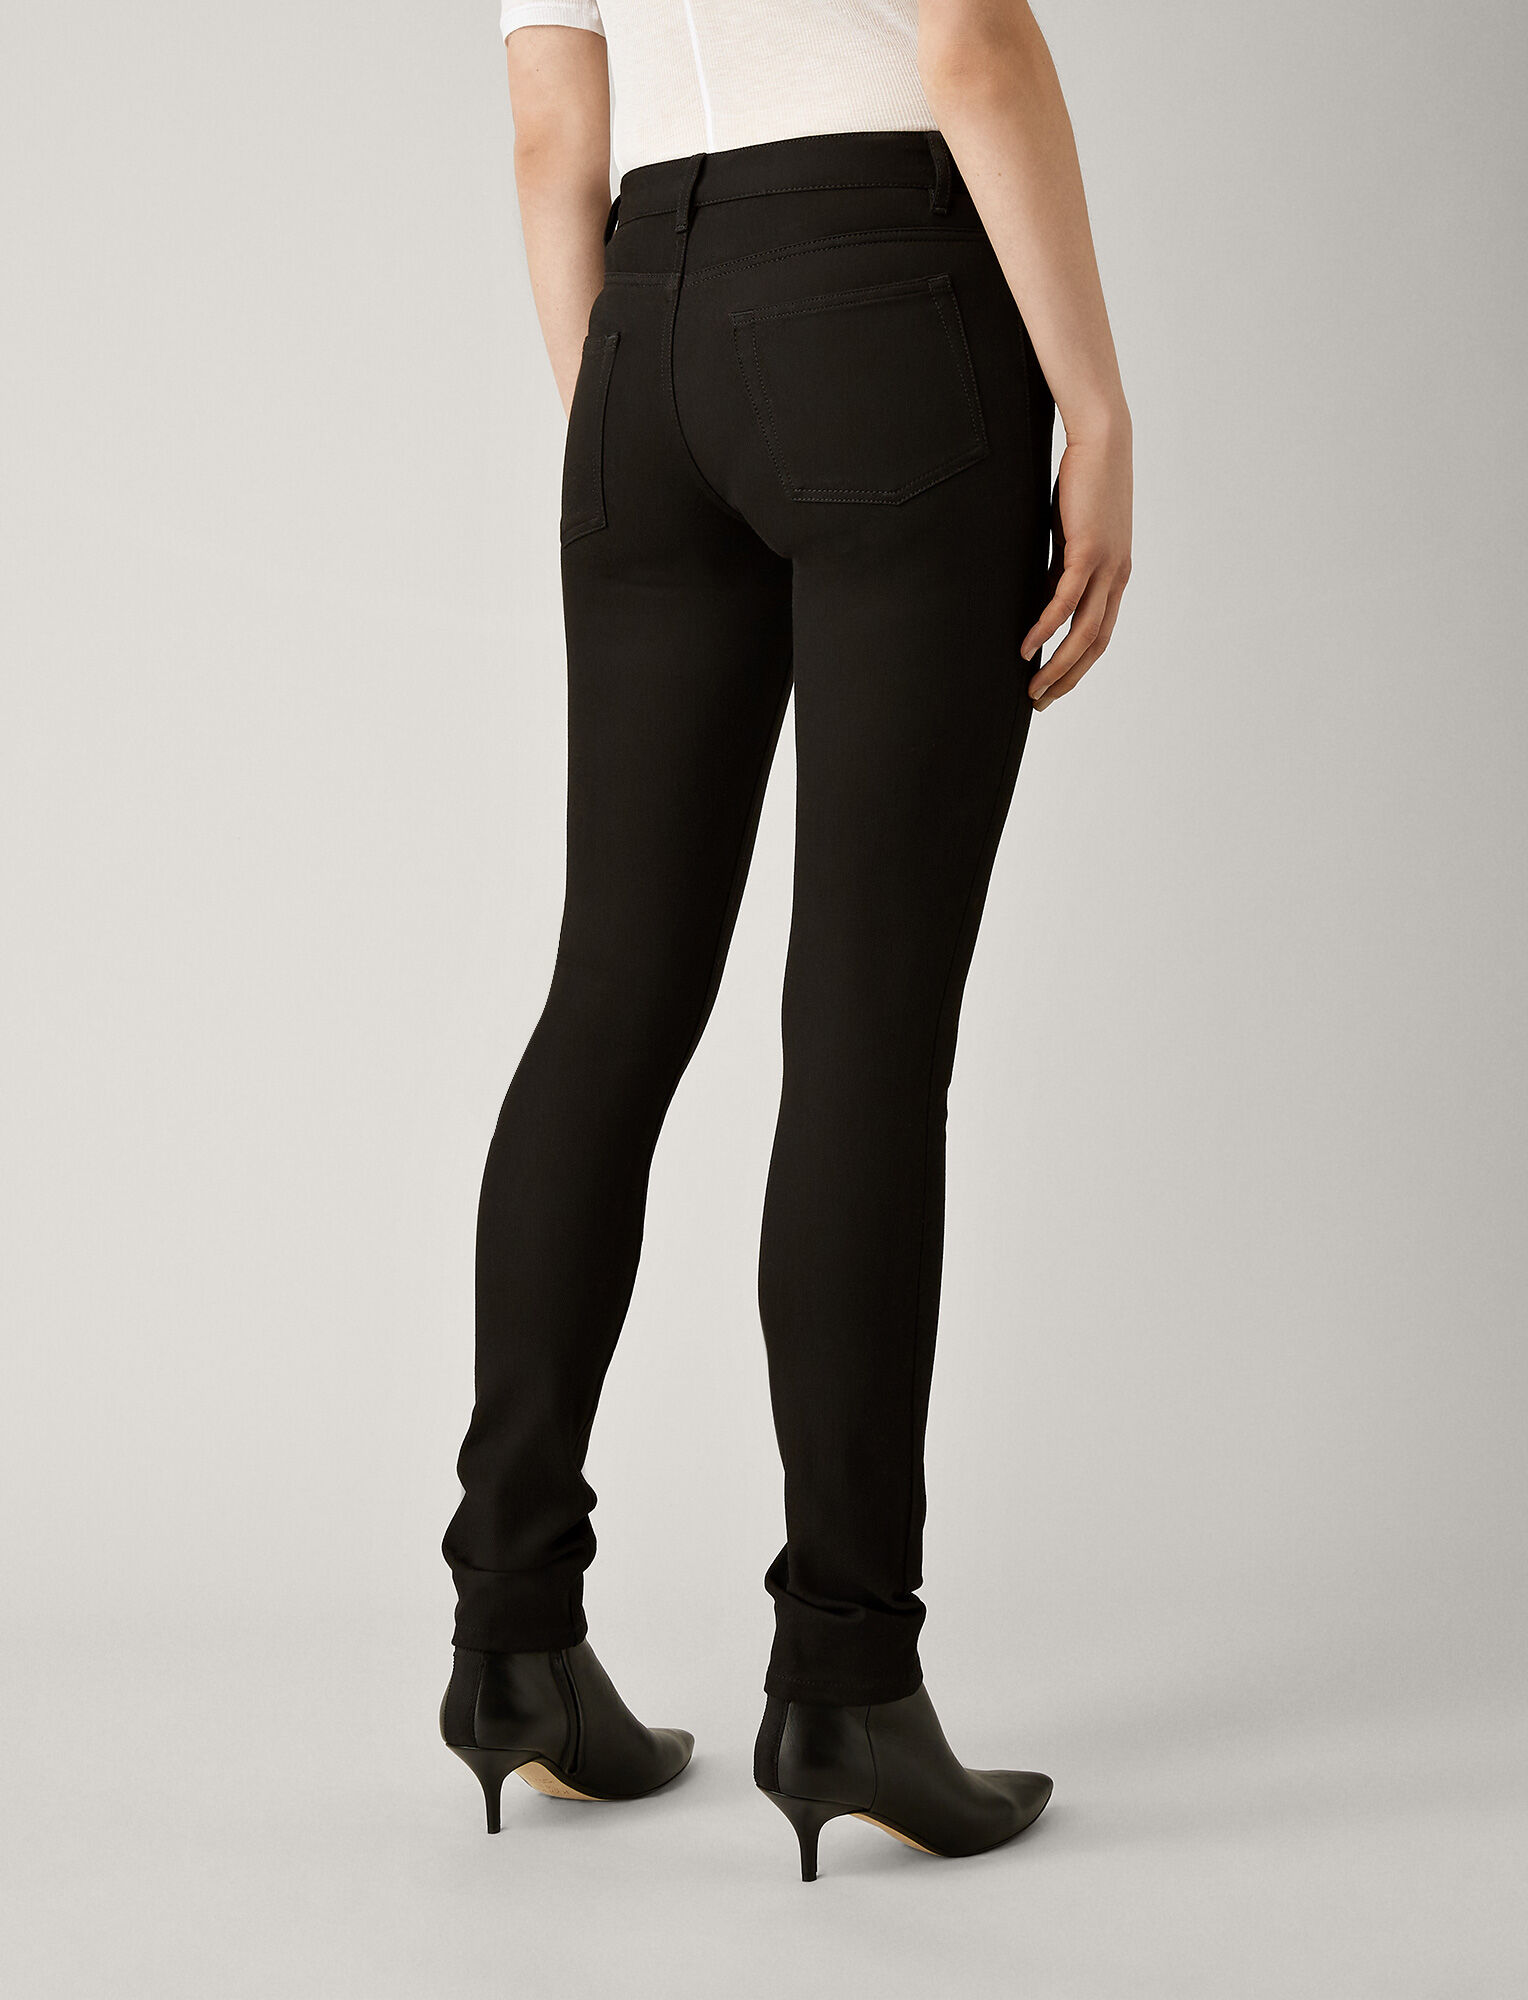 Joseph, Pantalon Cloud en gabardine stretch, in BLACK